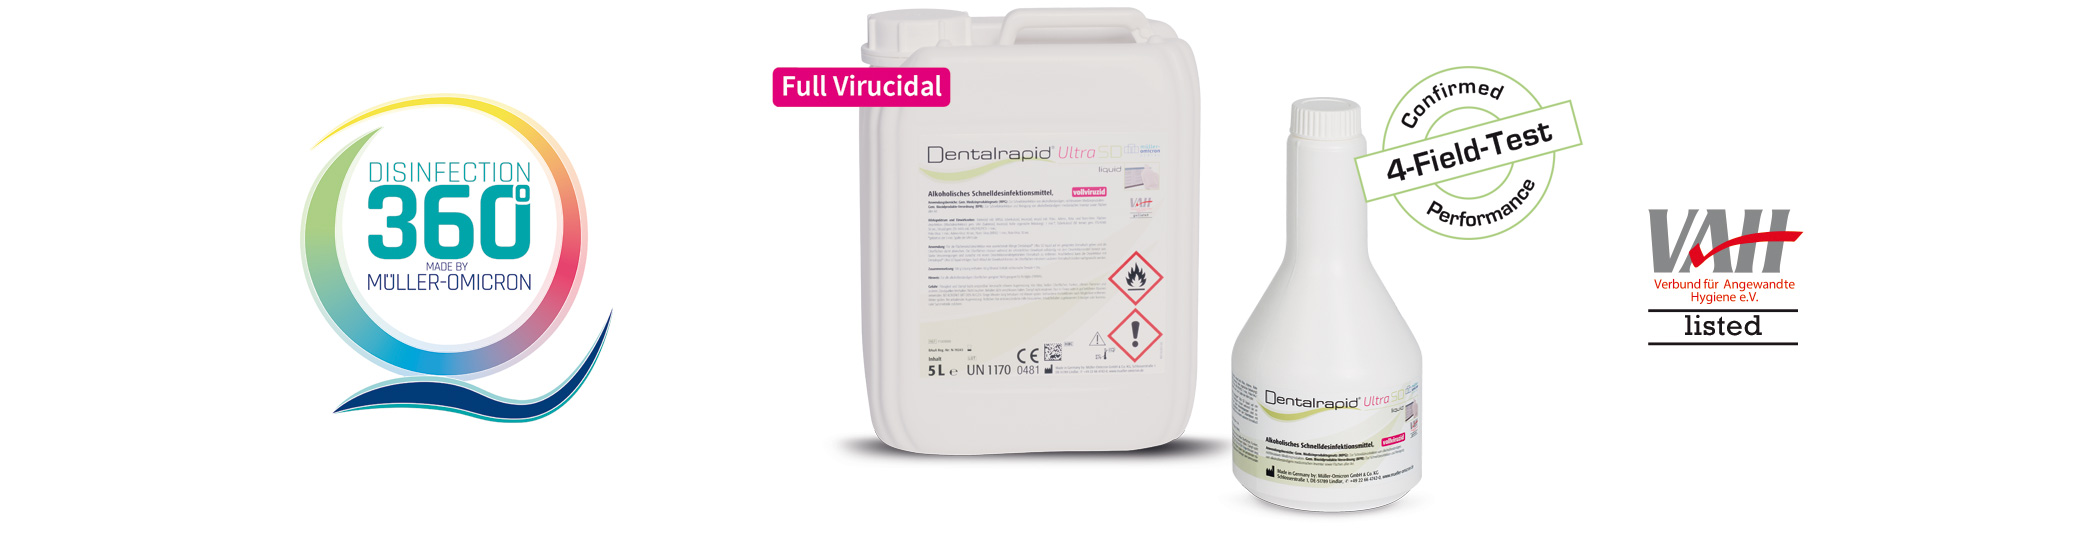 Dentalrapid Ultra SD liquid